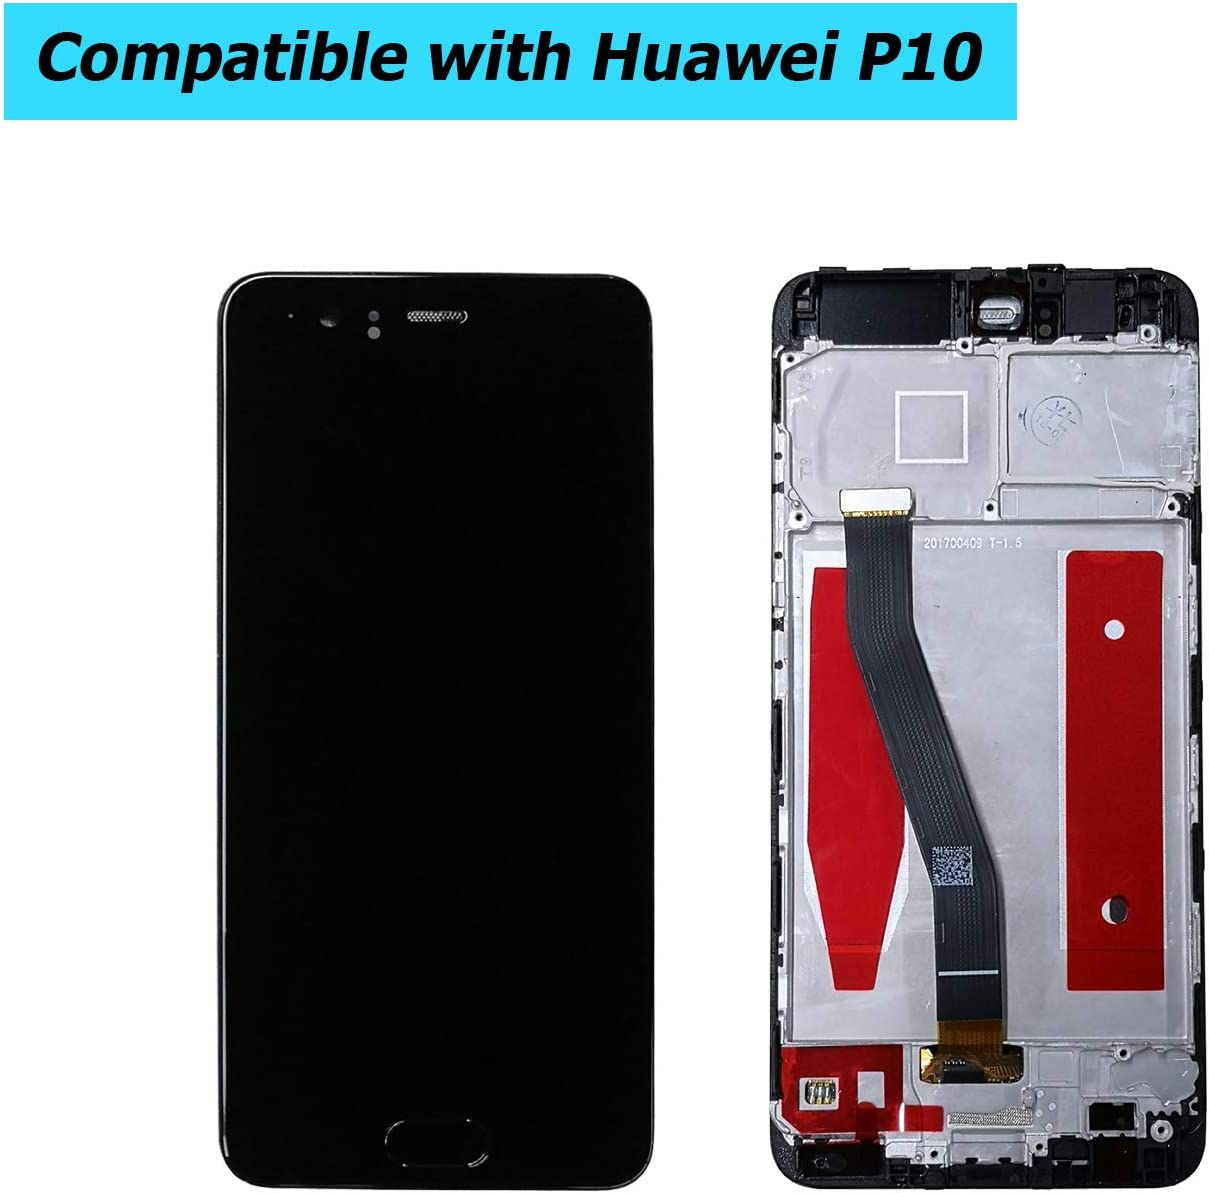 Upplus Replacement LCD Display Compatible for Huawei P10 VTR-AL00 VTR-TL00 VTR-L09 VTR-L29 Replacement Repair Display LCD Touch Screen Digitizer Assembly Glass with Frame with Toolkit Black